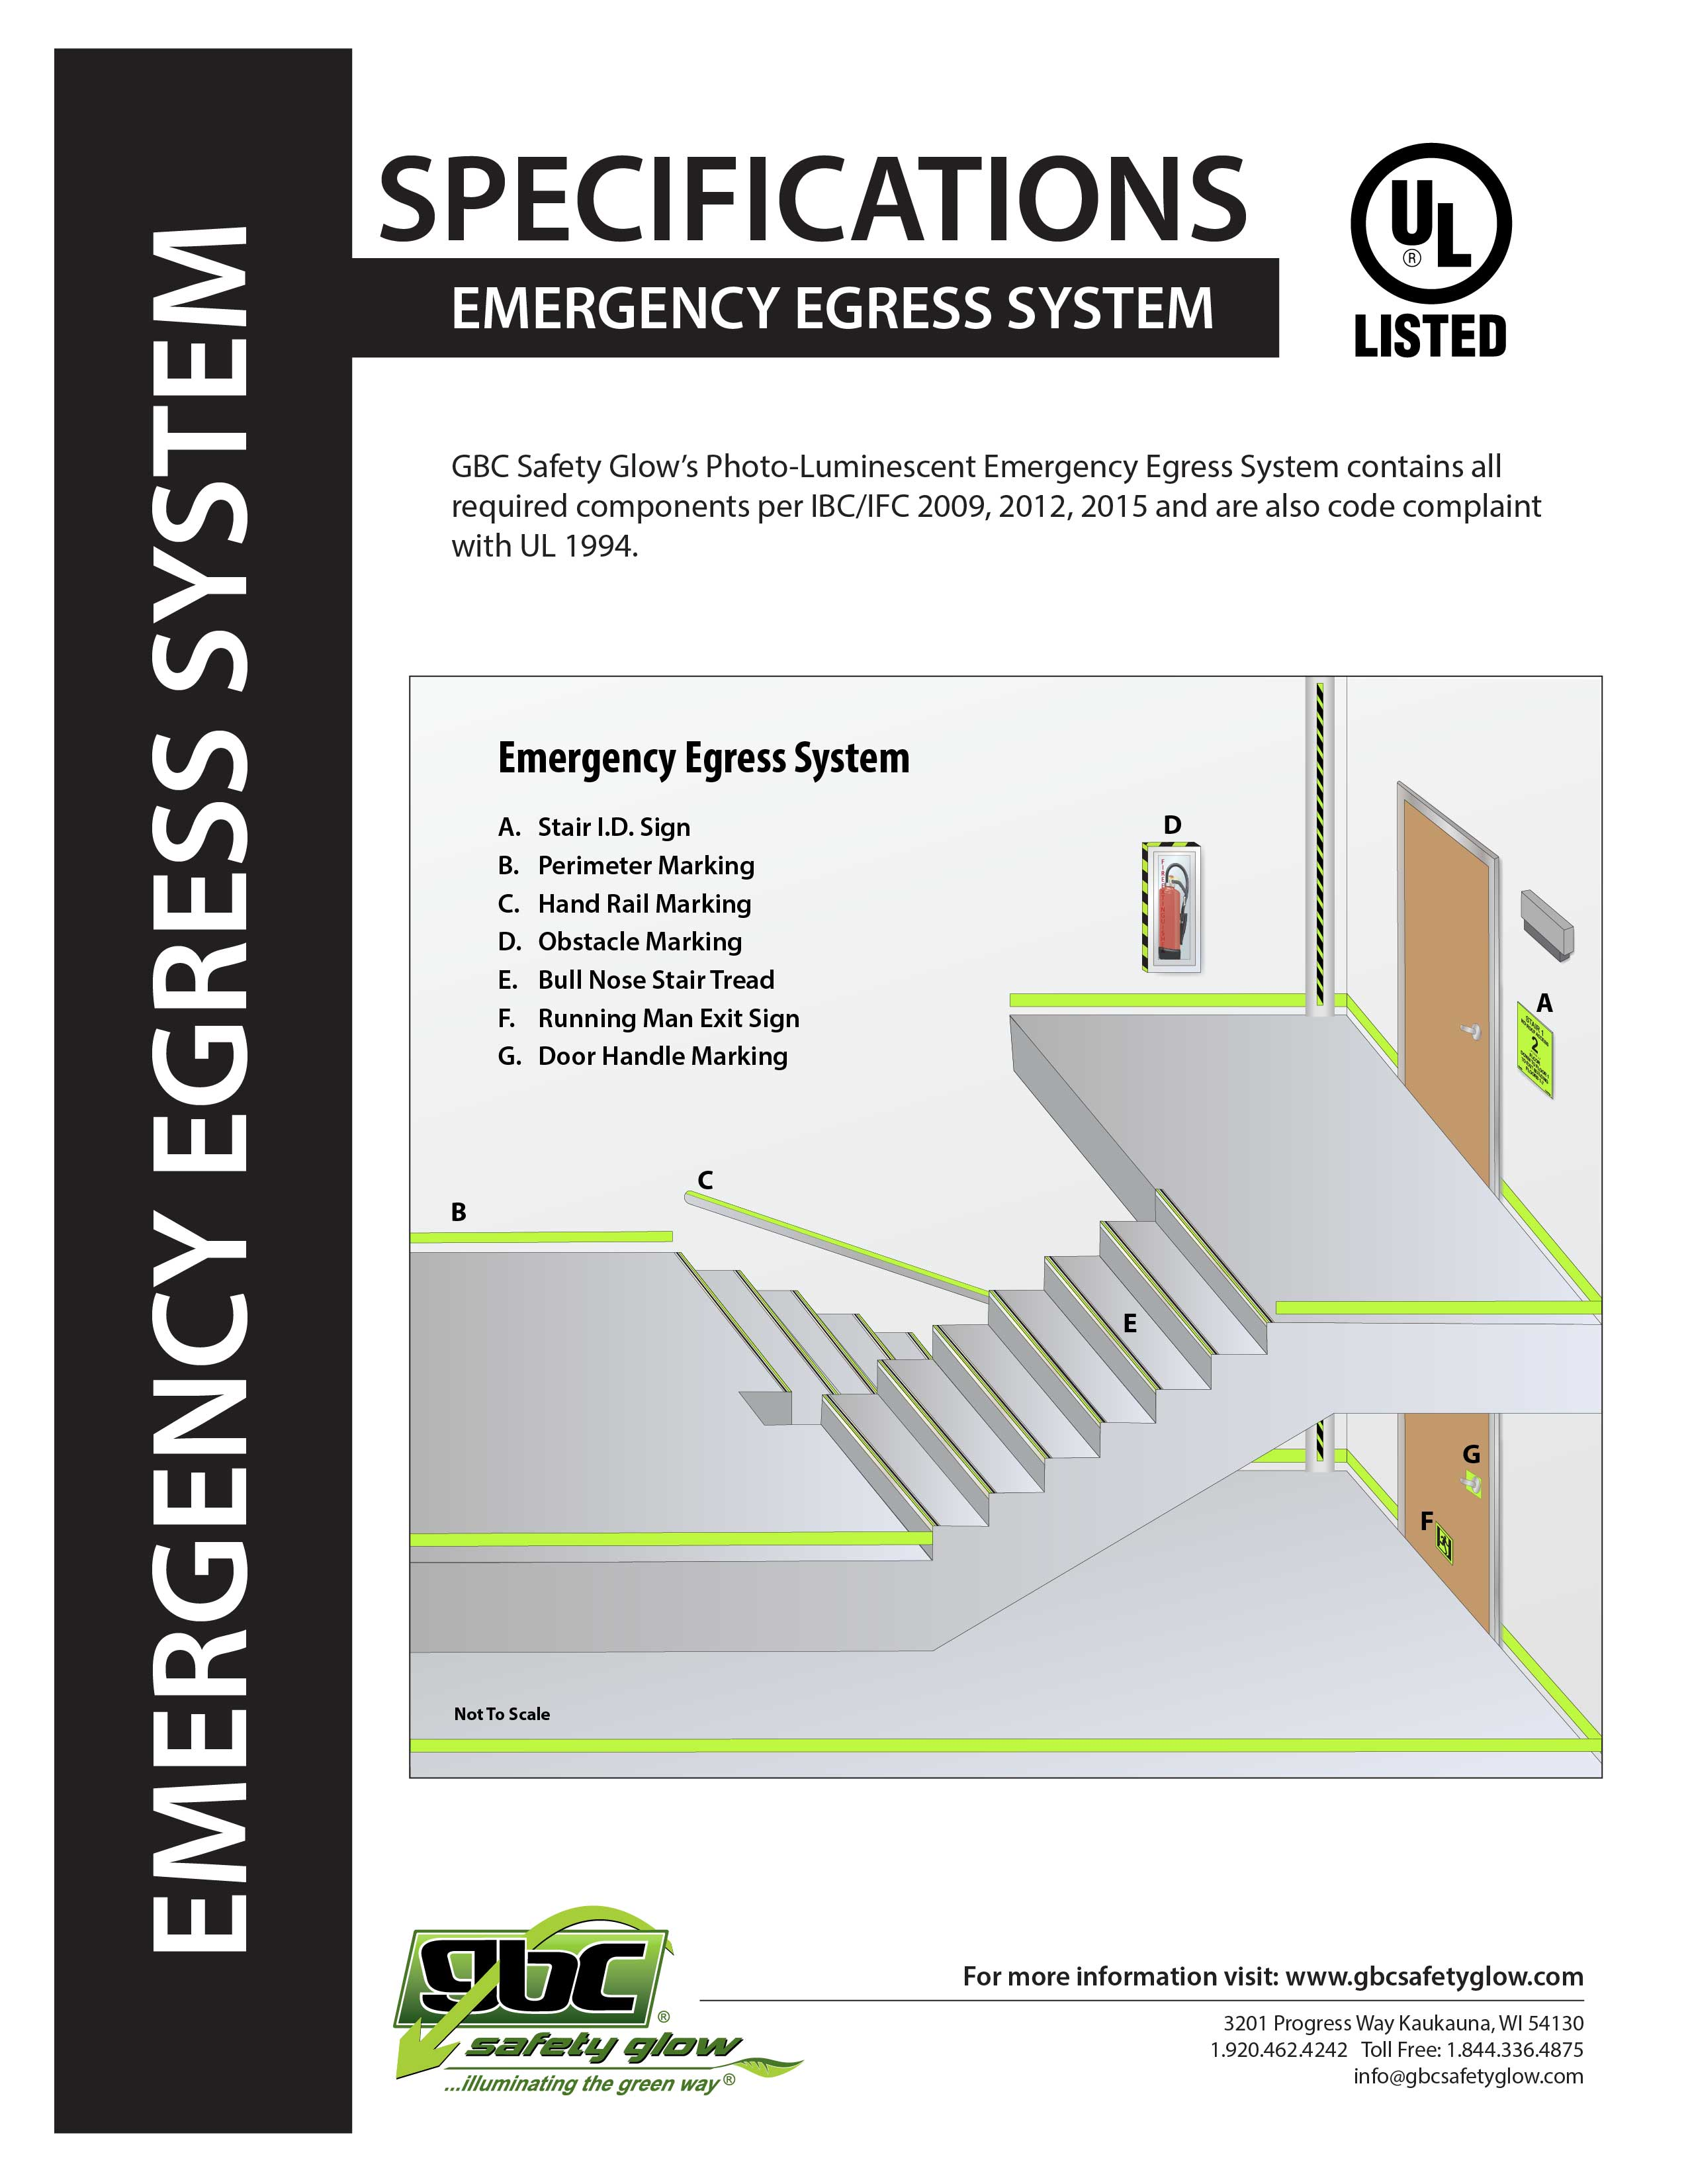 Emergency Egress System Specification Packet